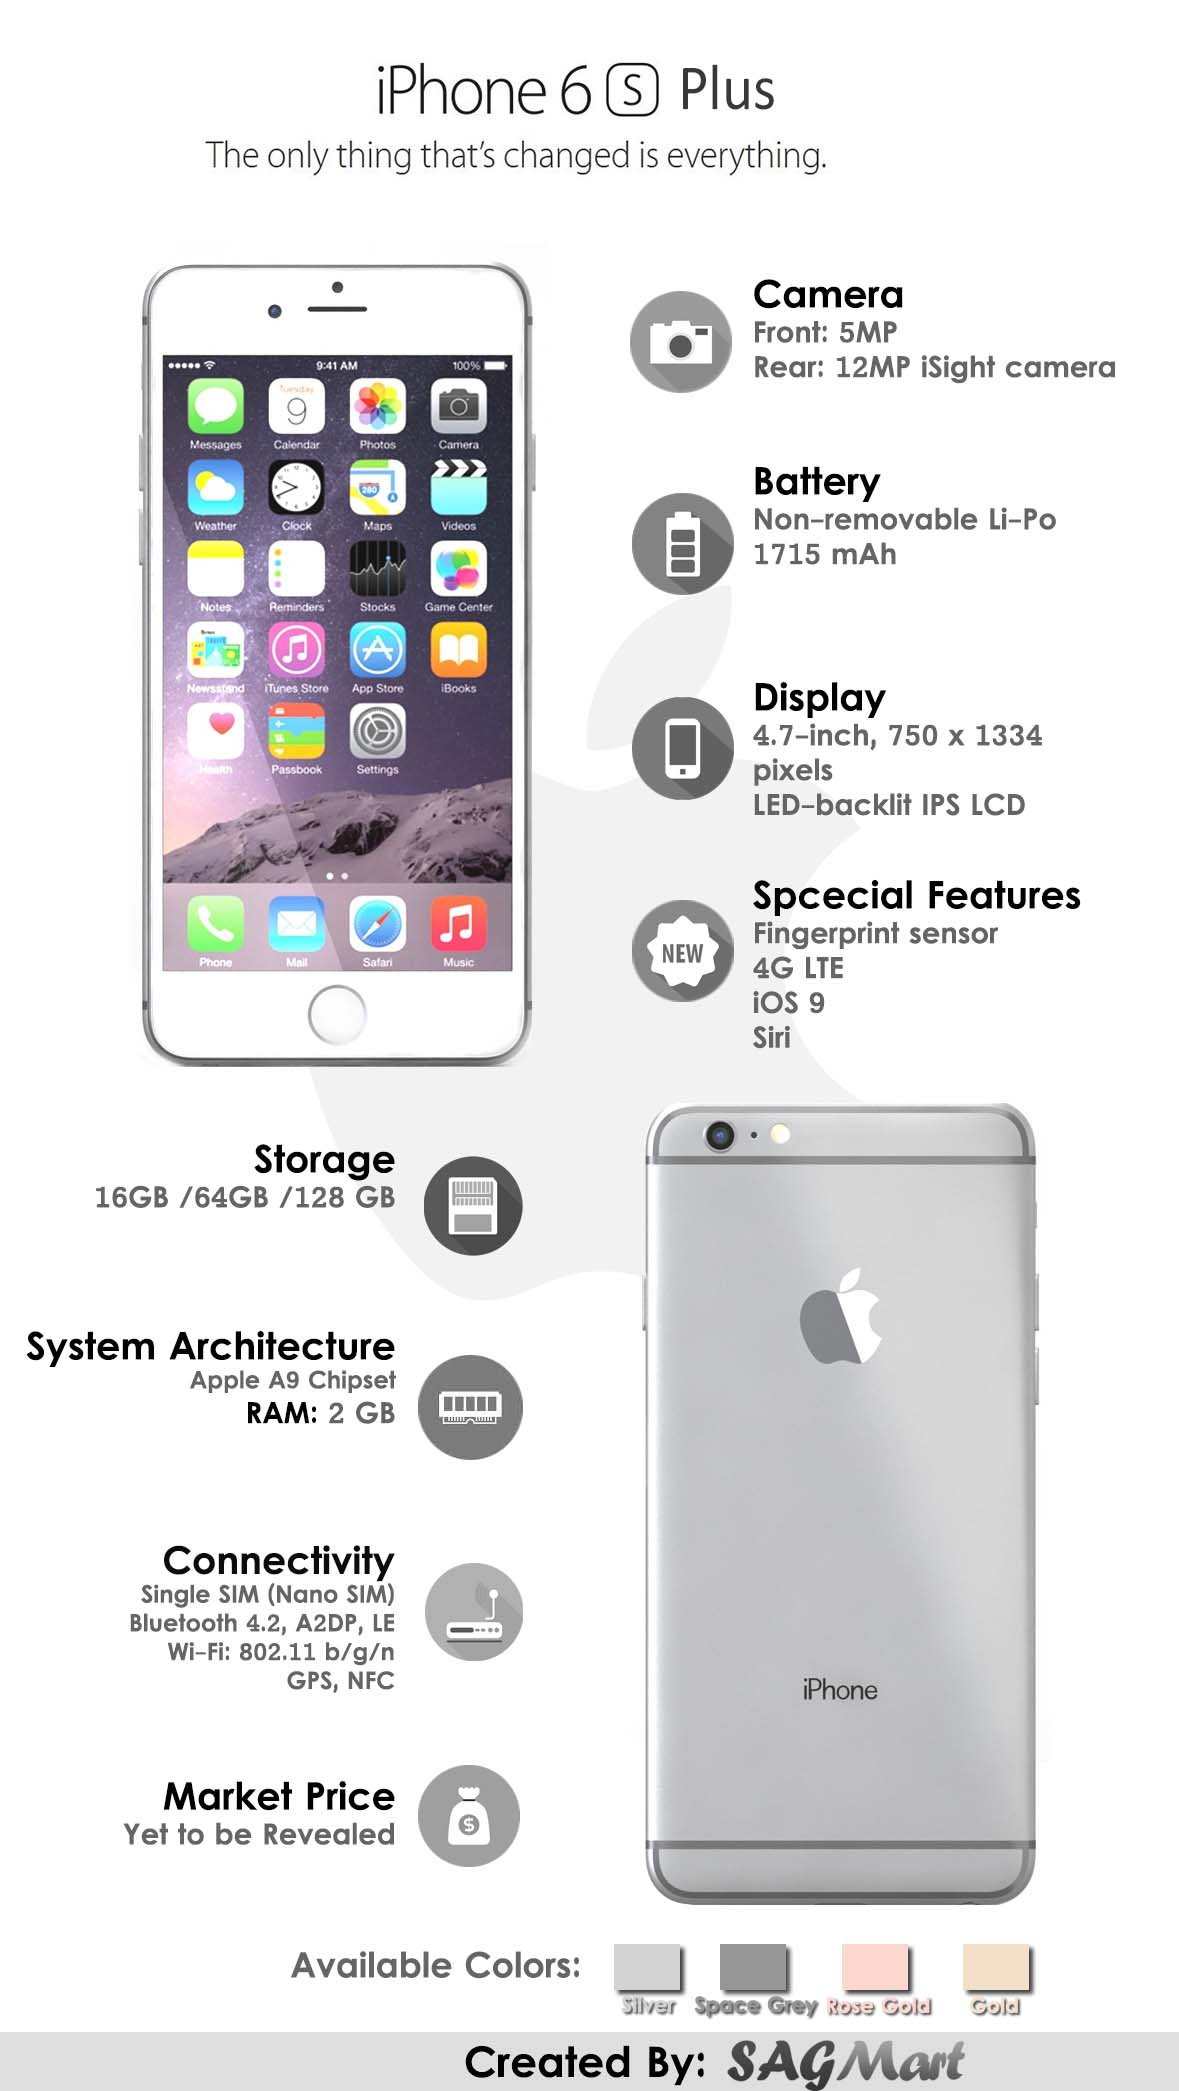 iphone 6s features iphone 6s plus specifications infographic sagmart 1086